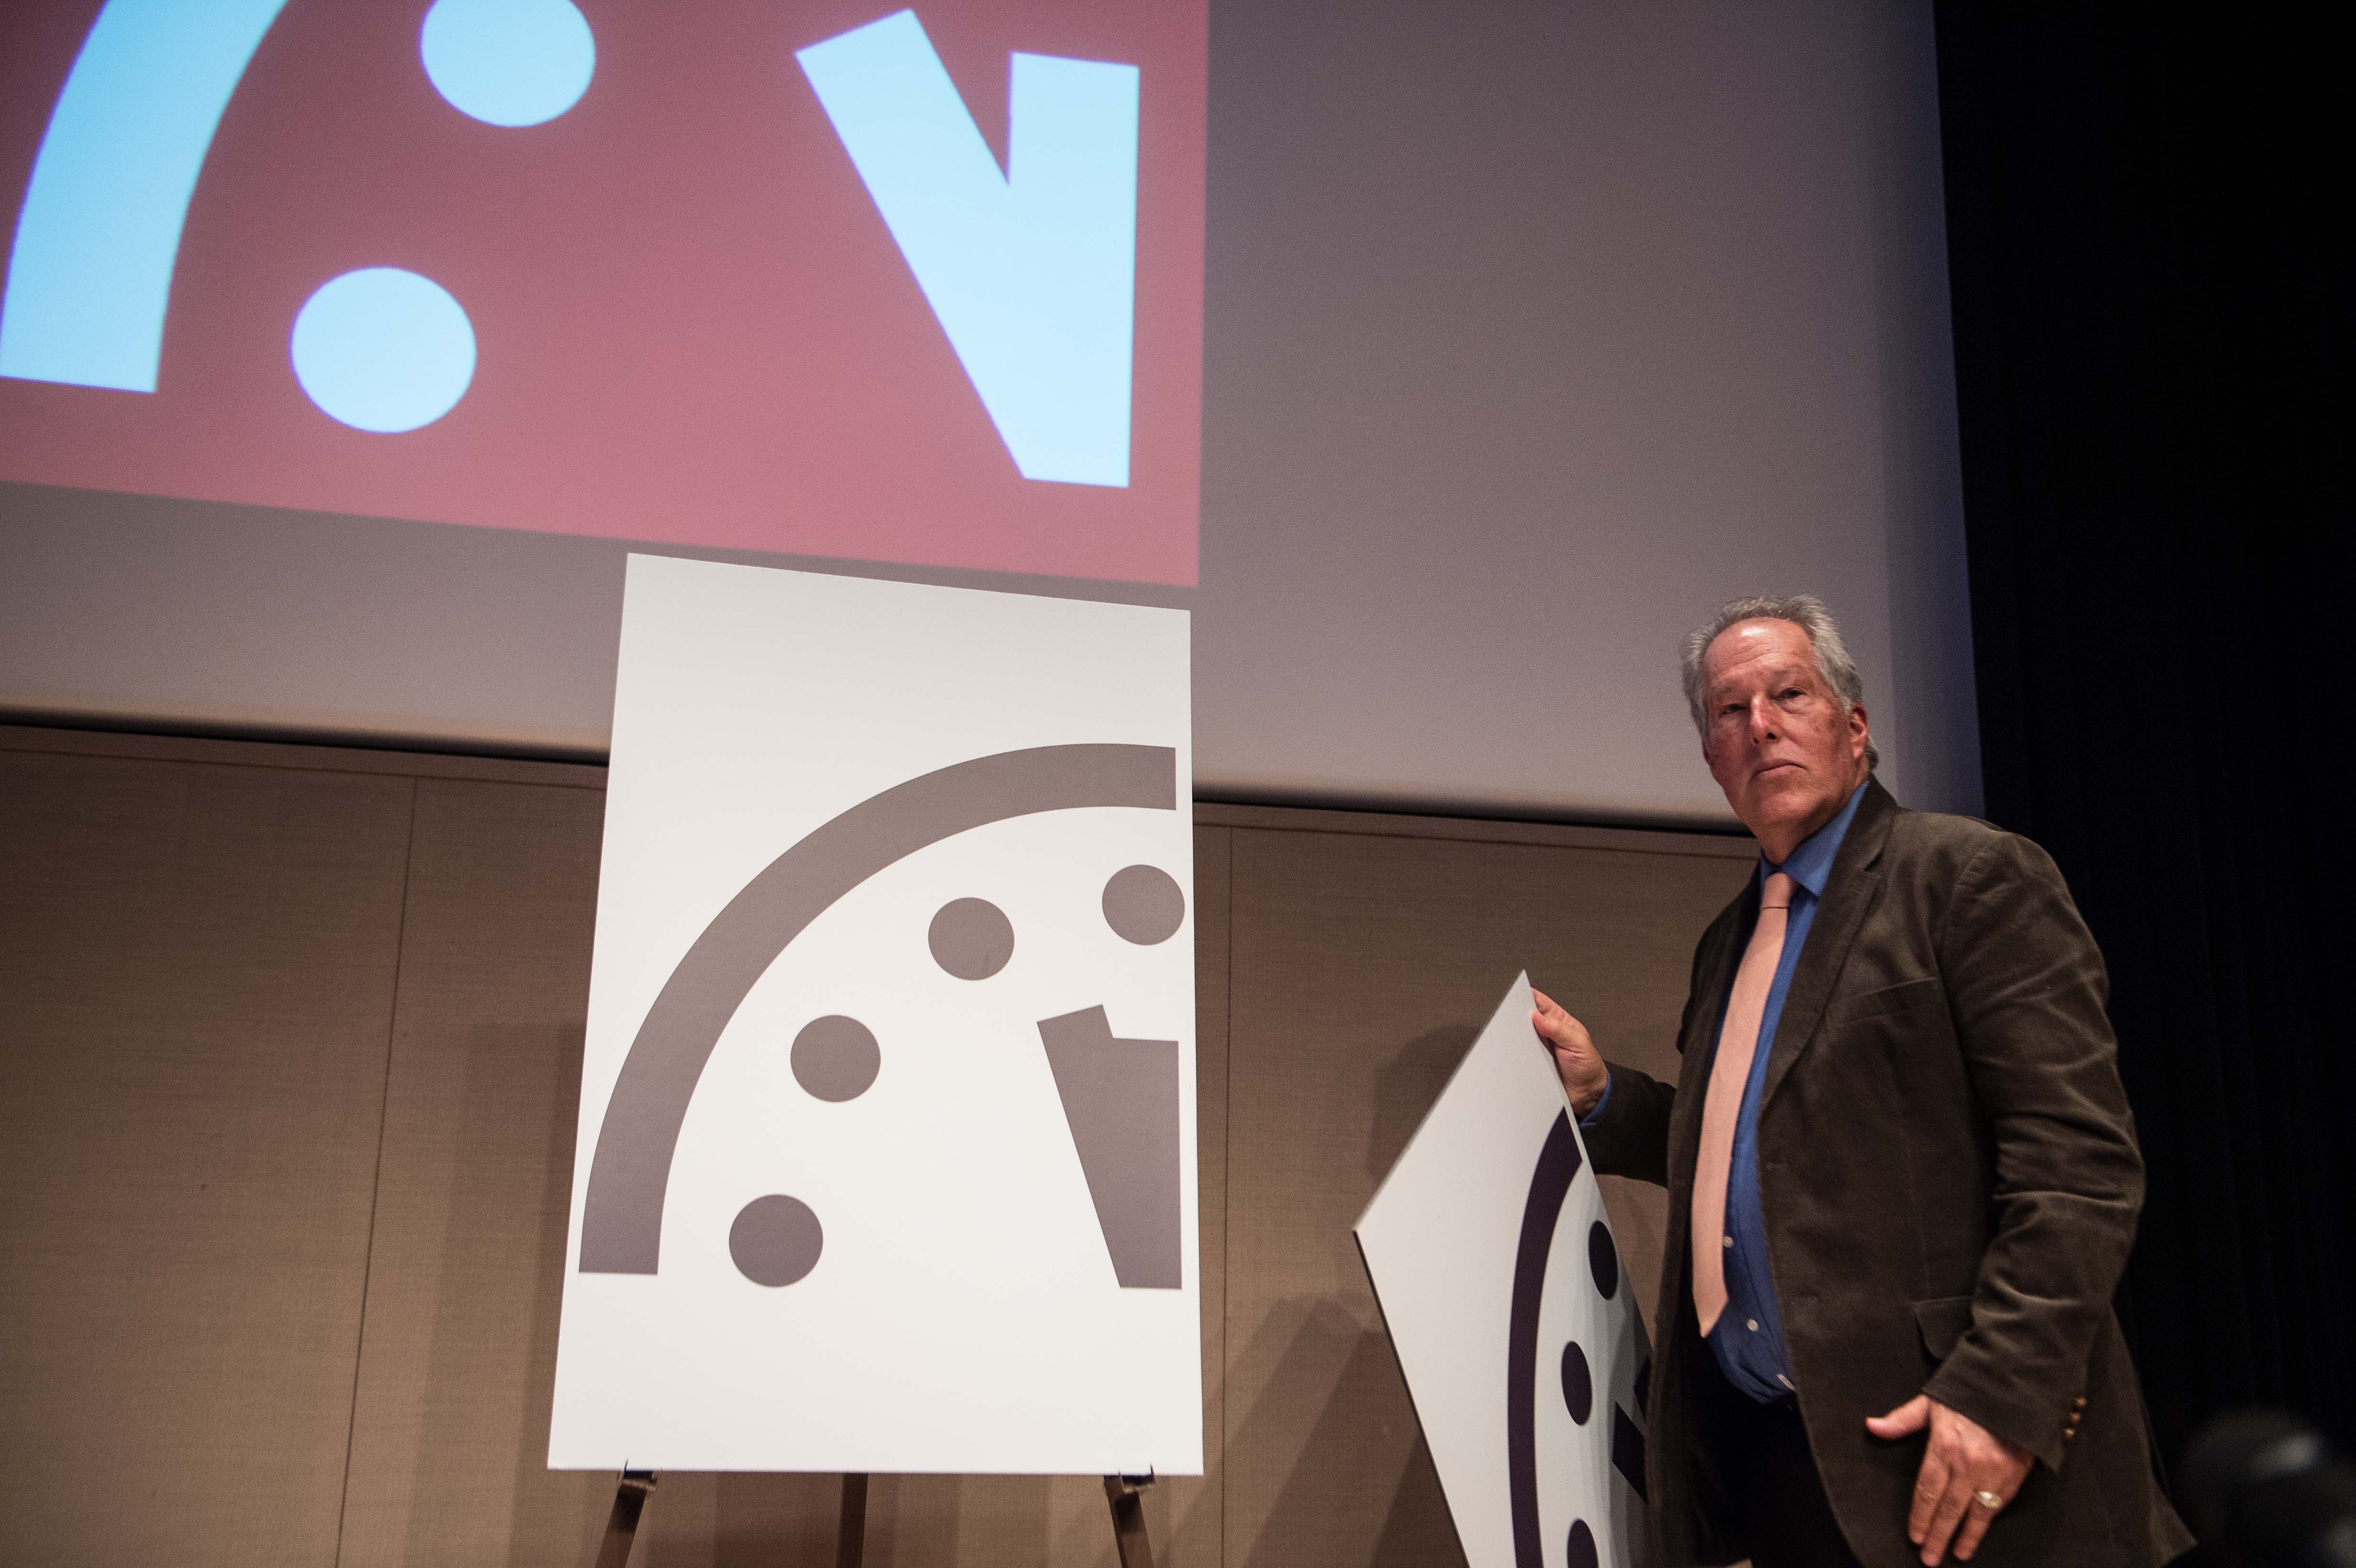 Doomsday Clock 2018 Moves Closer To Midnight Thanks To Trump Time